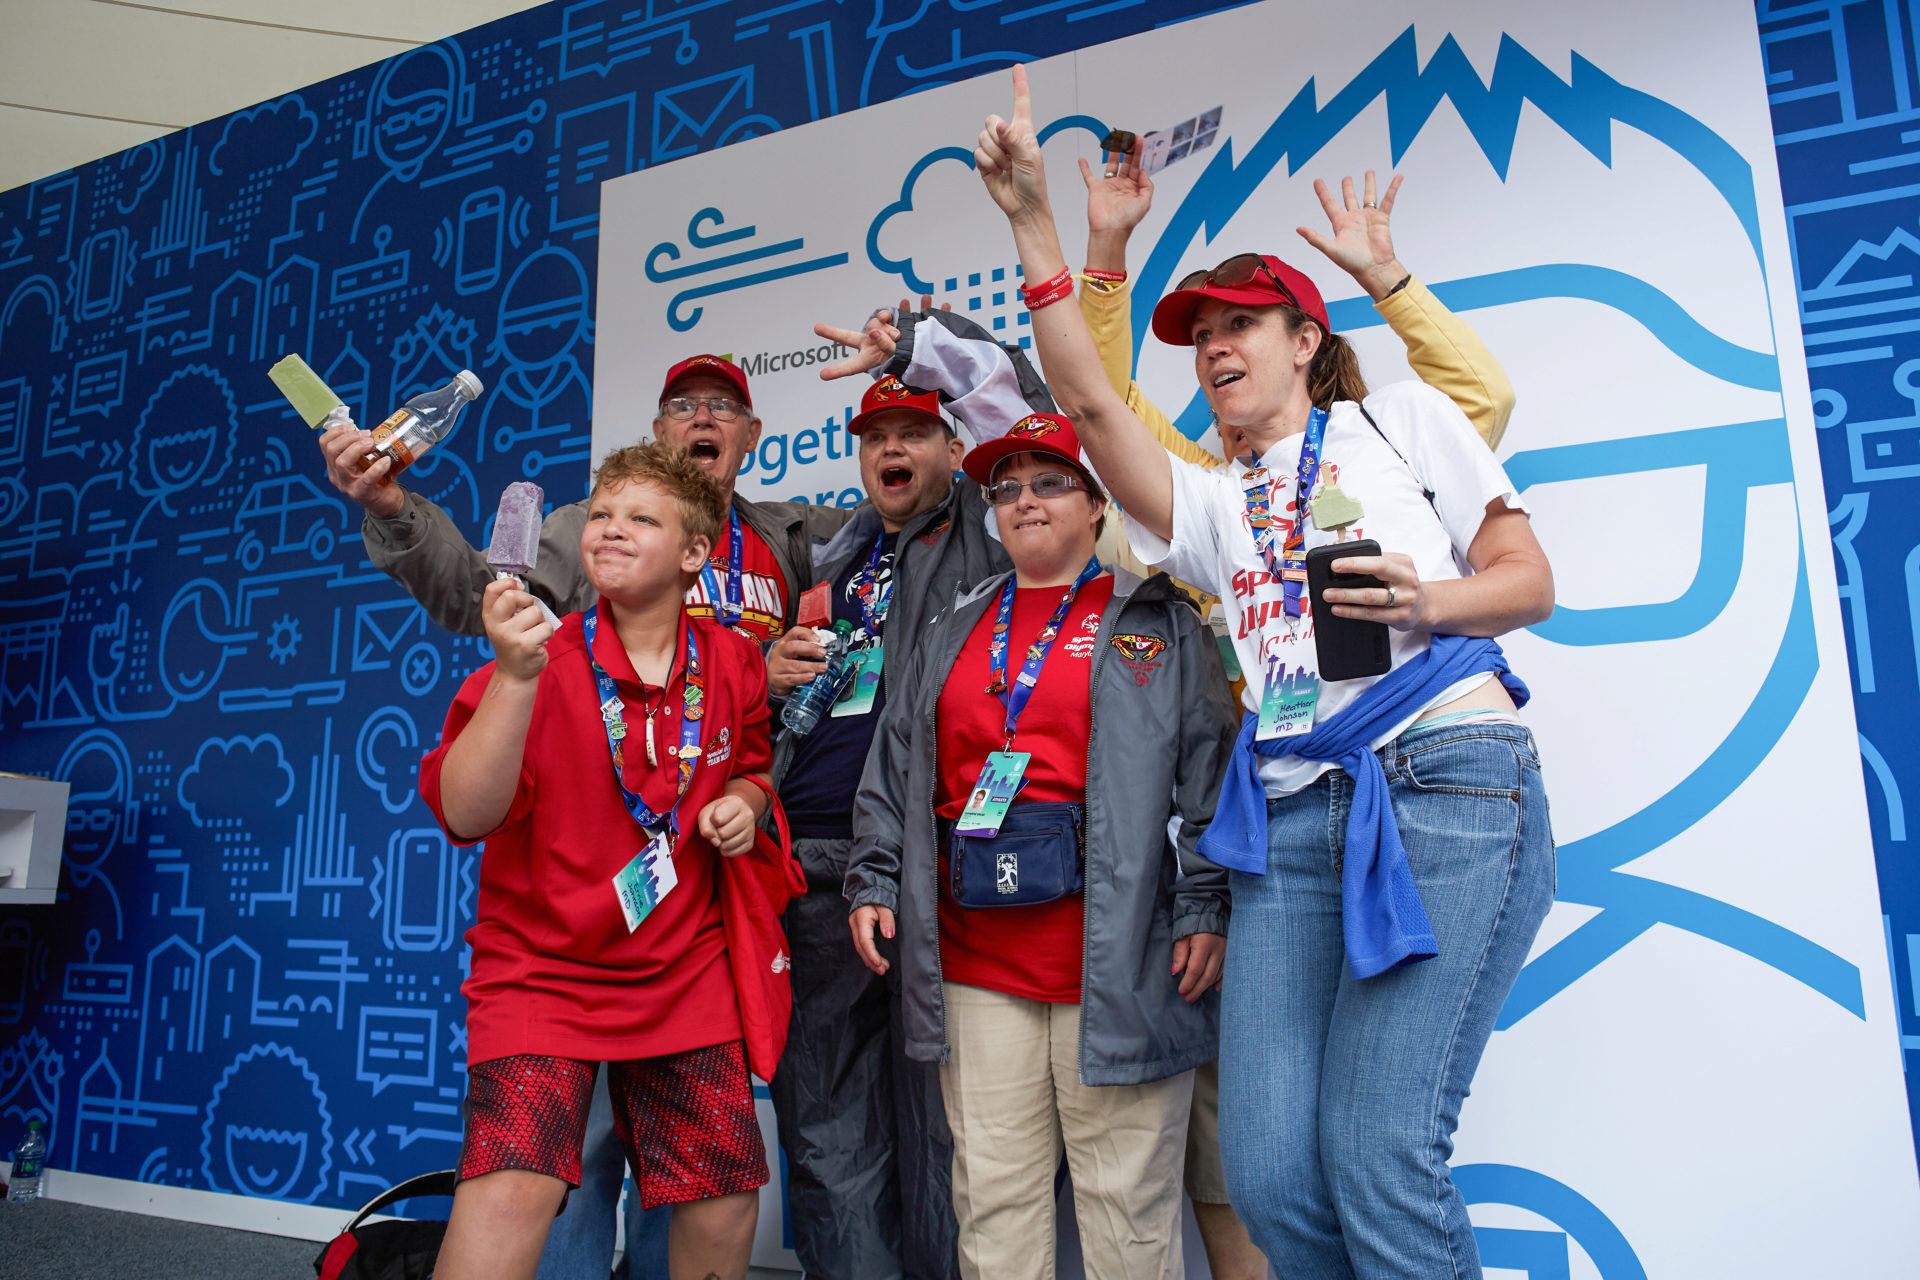 OHM-Microsoft-Special Olympics-Top Selects-7236.jpg